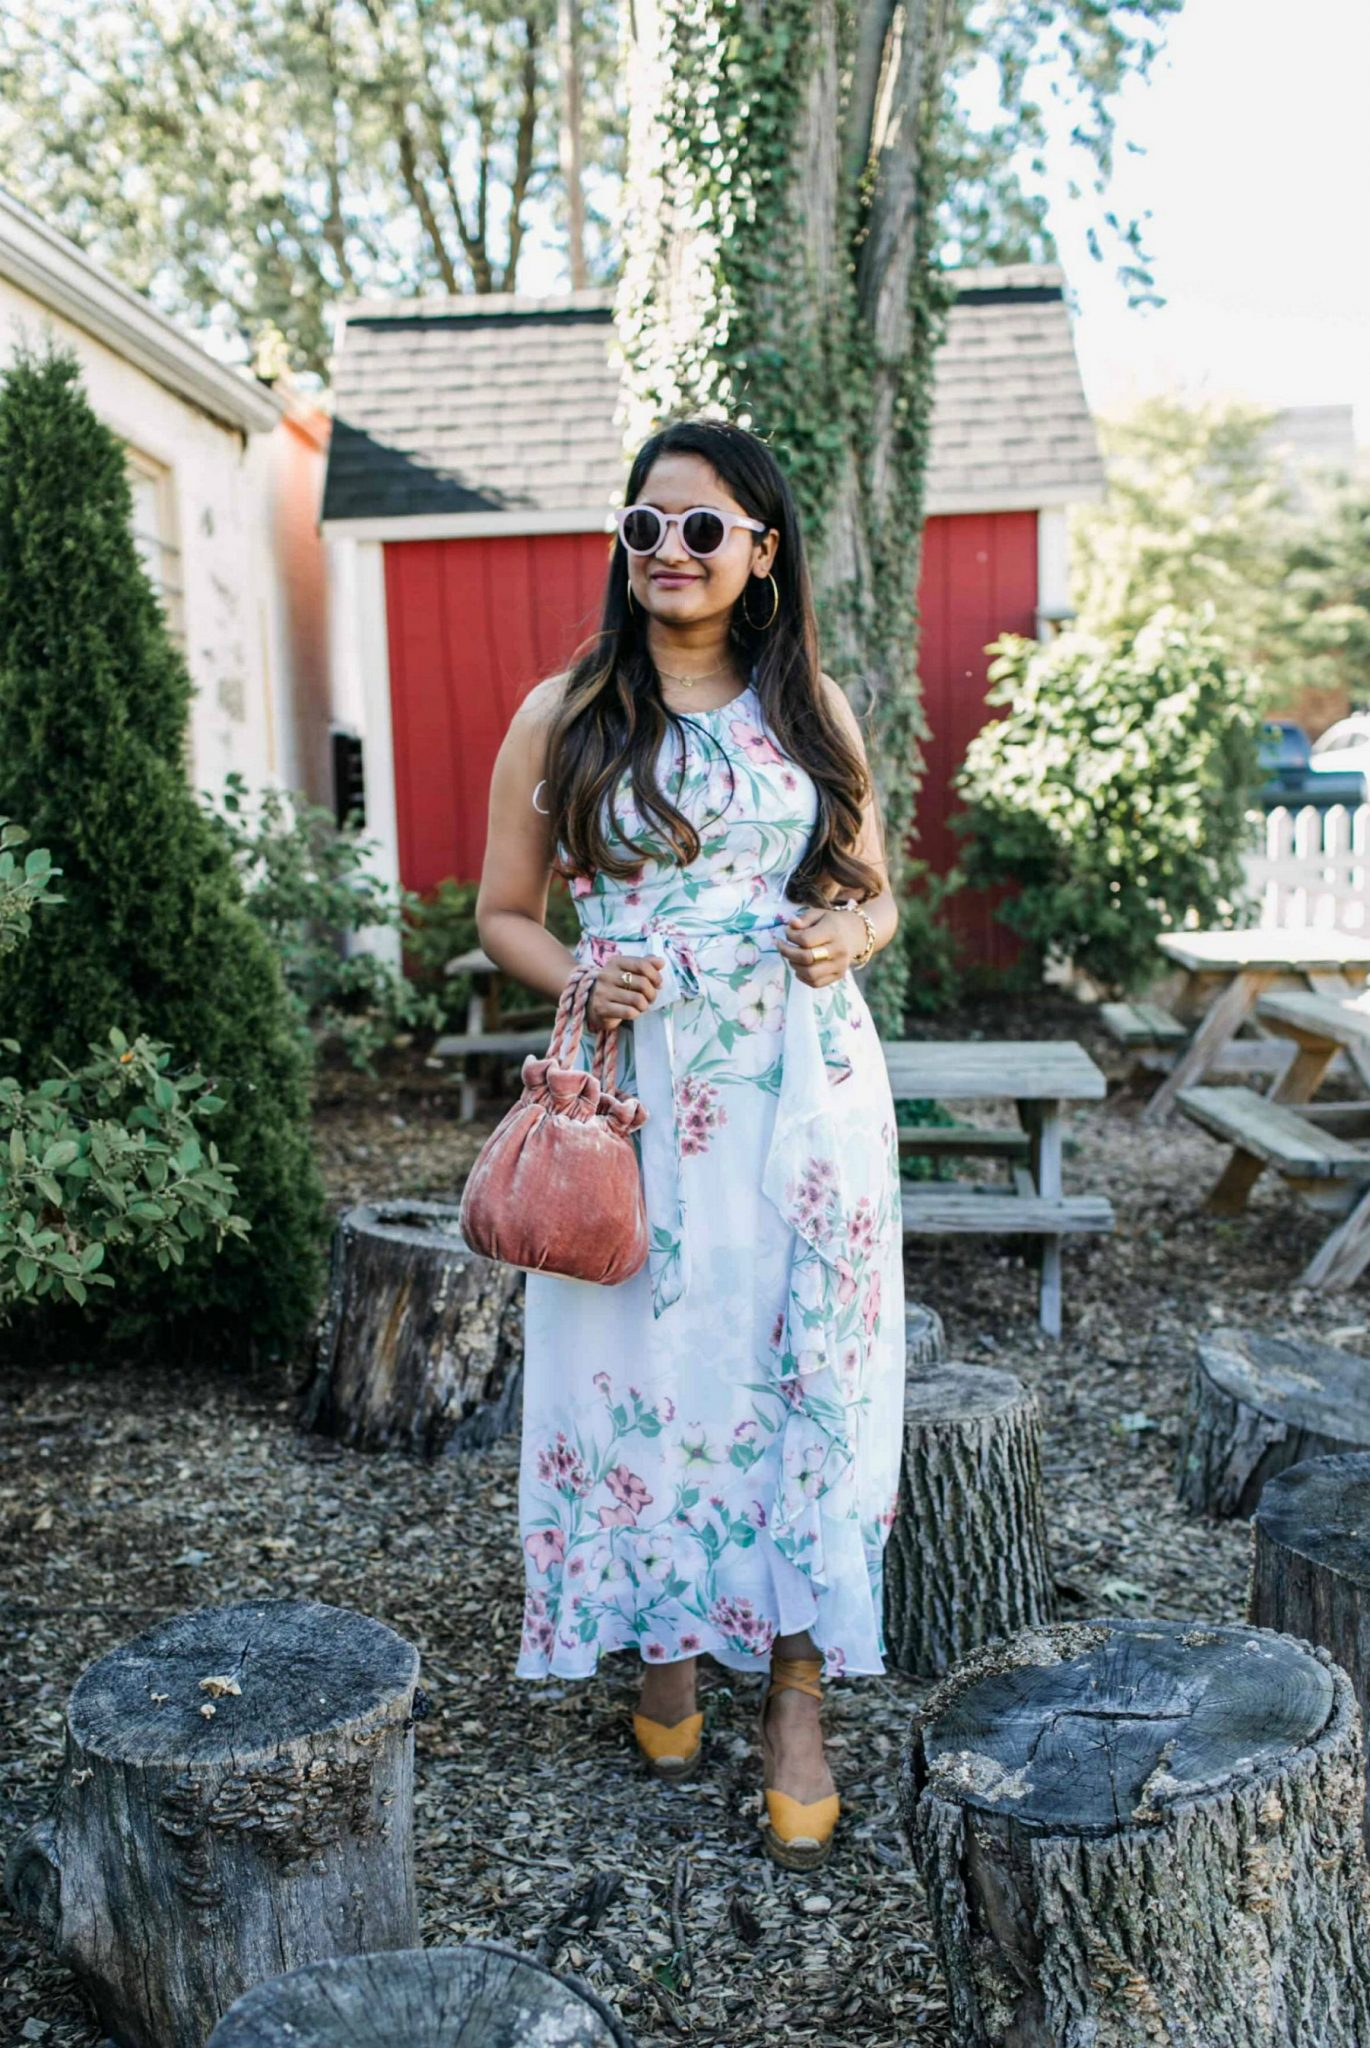 wearing R & K Originals Sleeveless Floral Maxi Dress - JCPenney 6 | | Cute Wedding Guest Dresses for Summer featured by popular US modest fashion blogger, Dreaming Loud